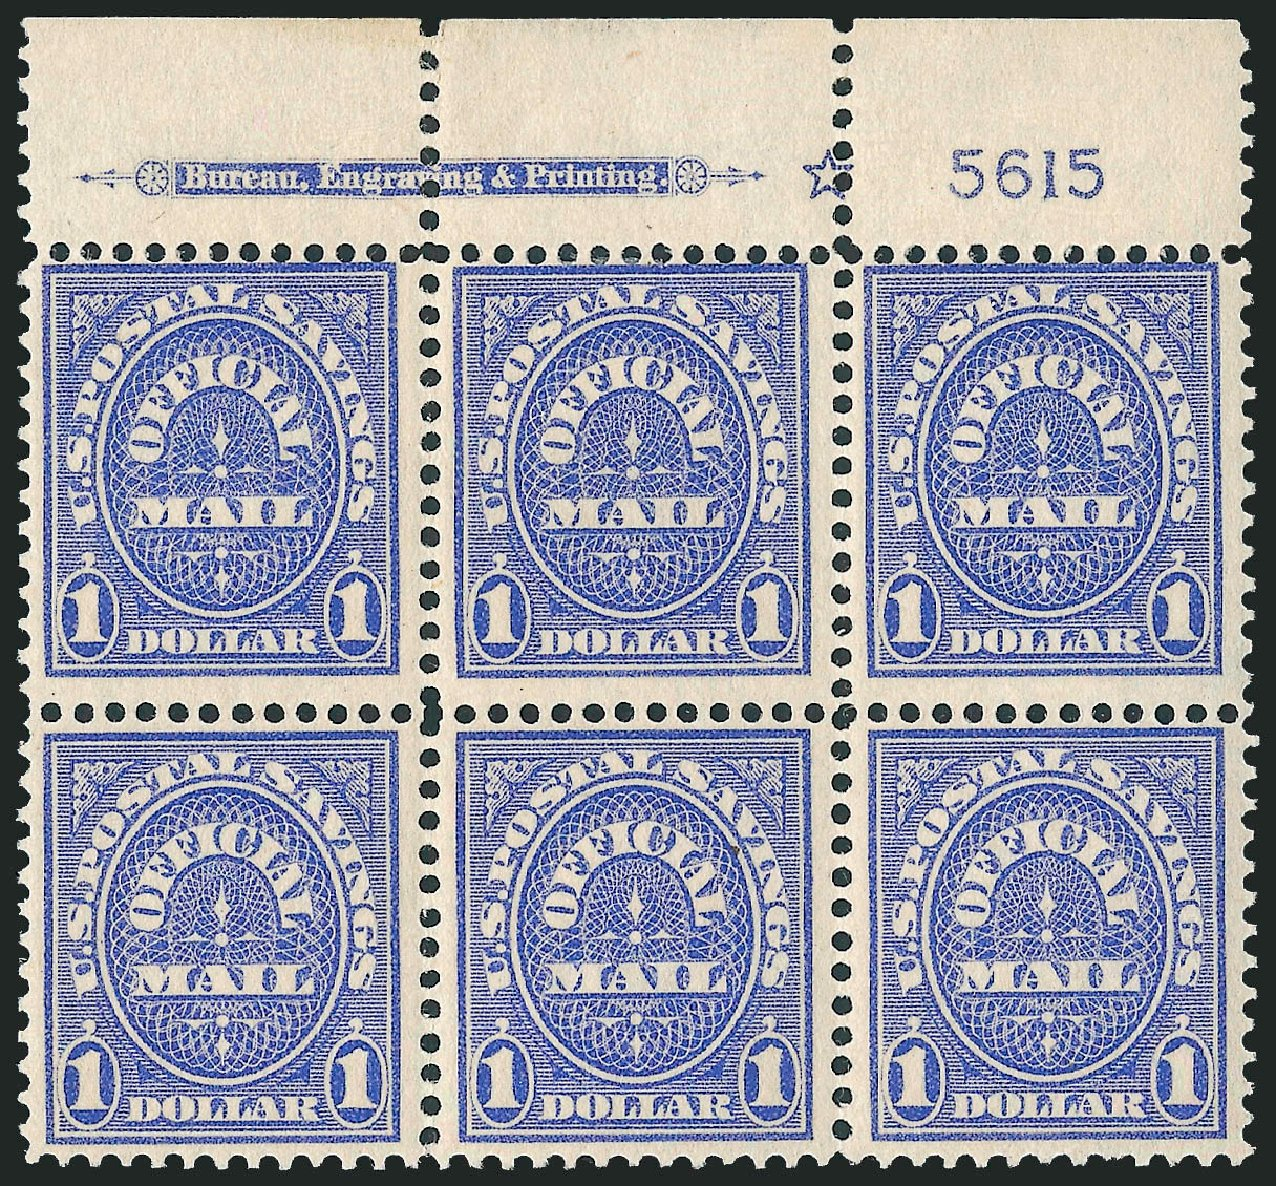 Cost of US Stamps Scott #O123 - US$1.00 1911 Postal Savings Official. Robert Siegel Auction Galleries, Jun 2010, Sale 991, Lot 1480